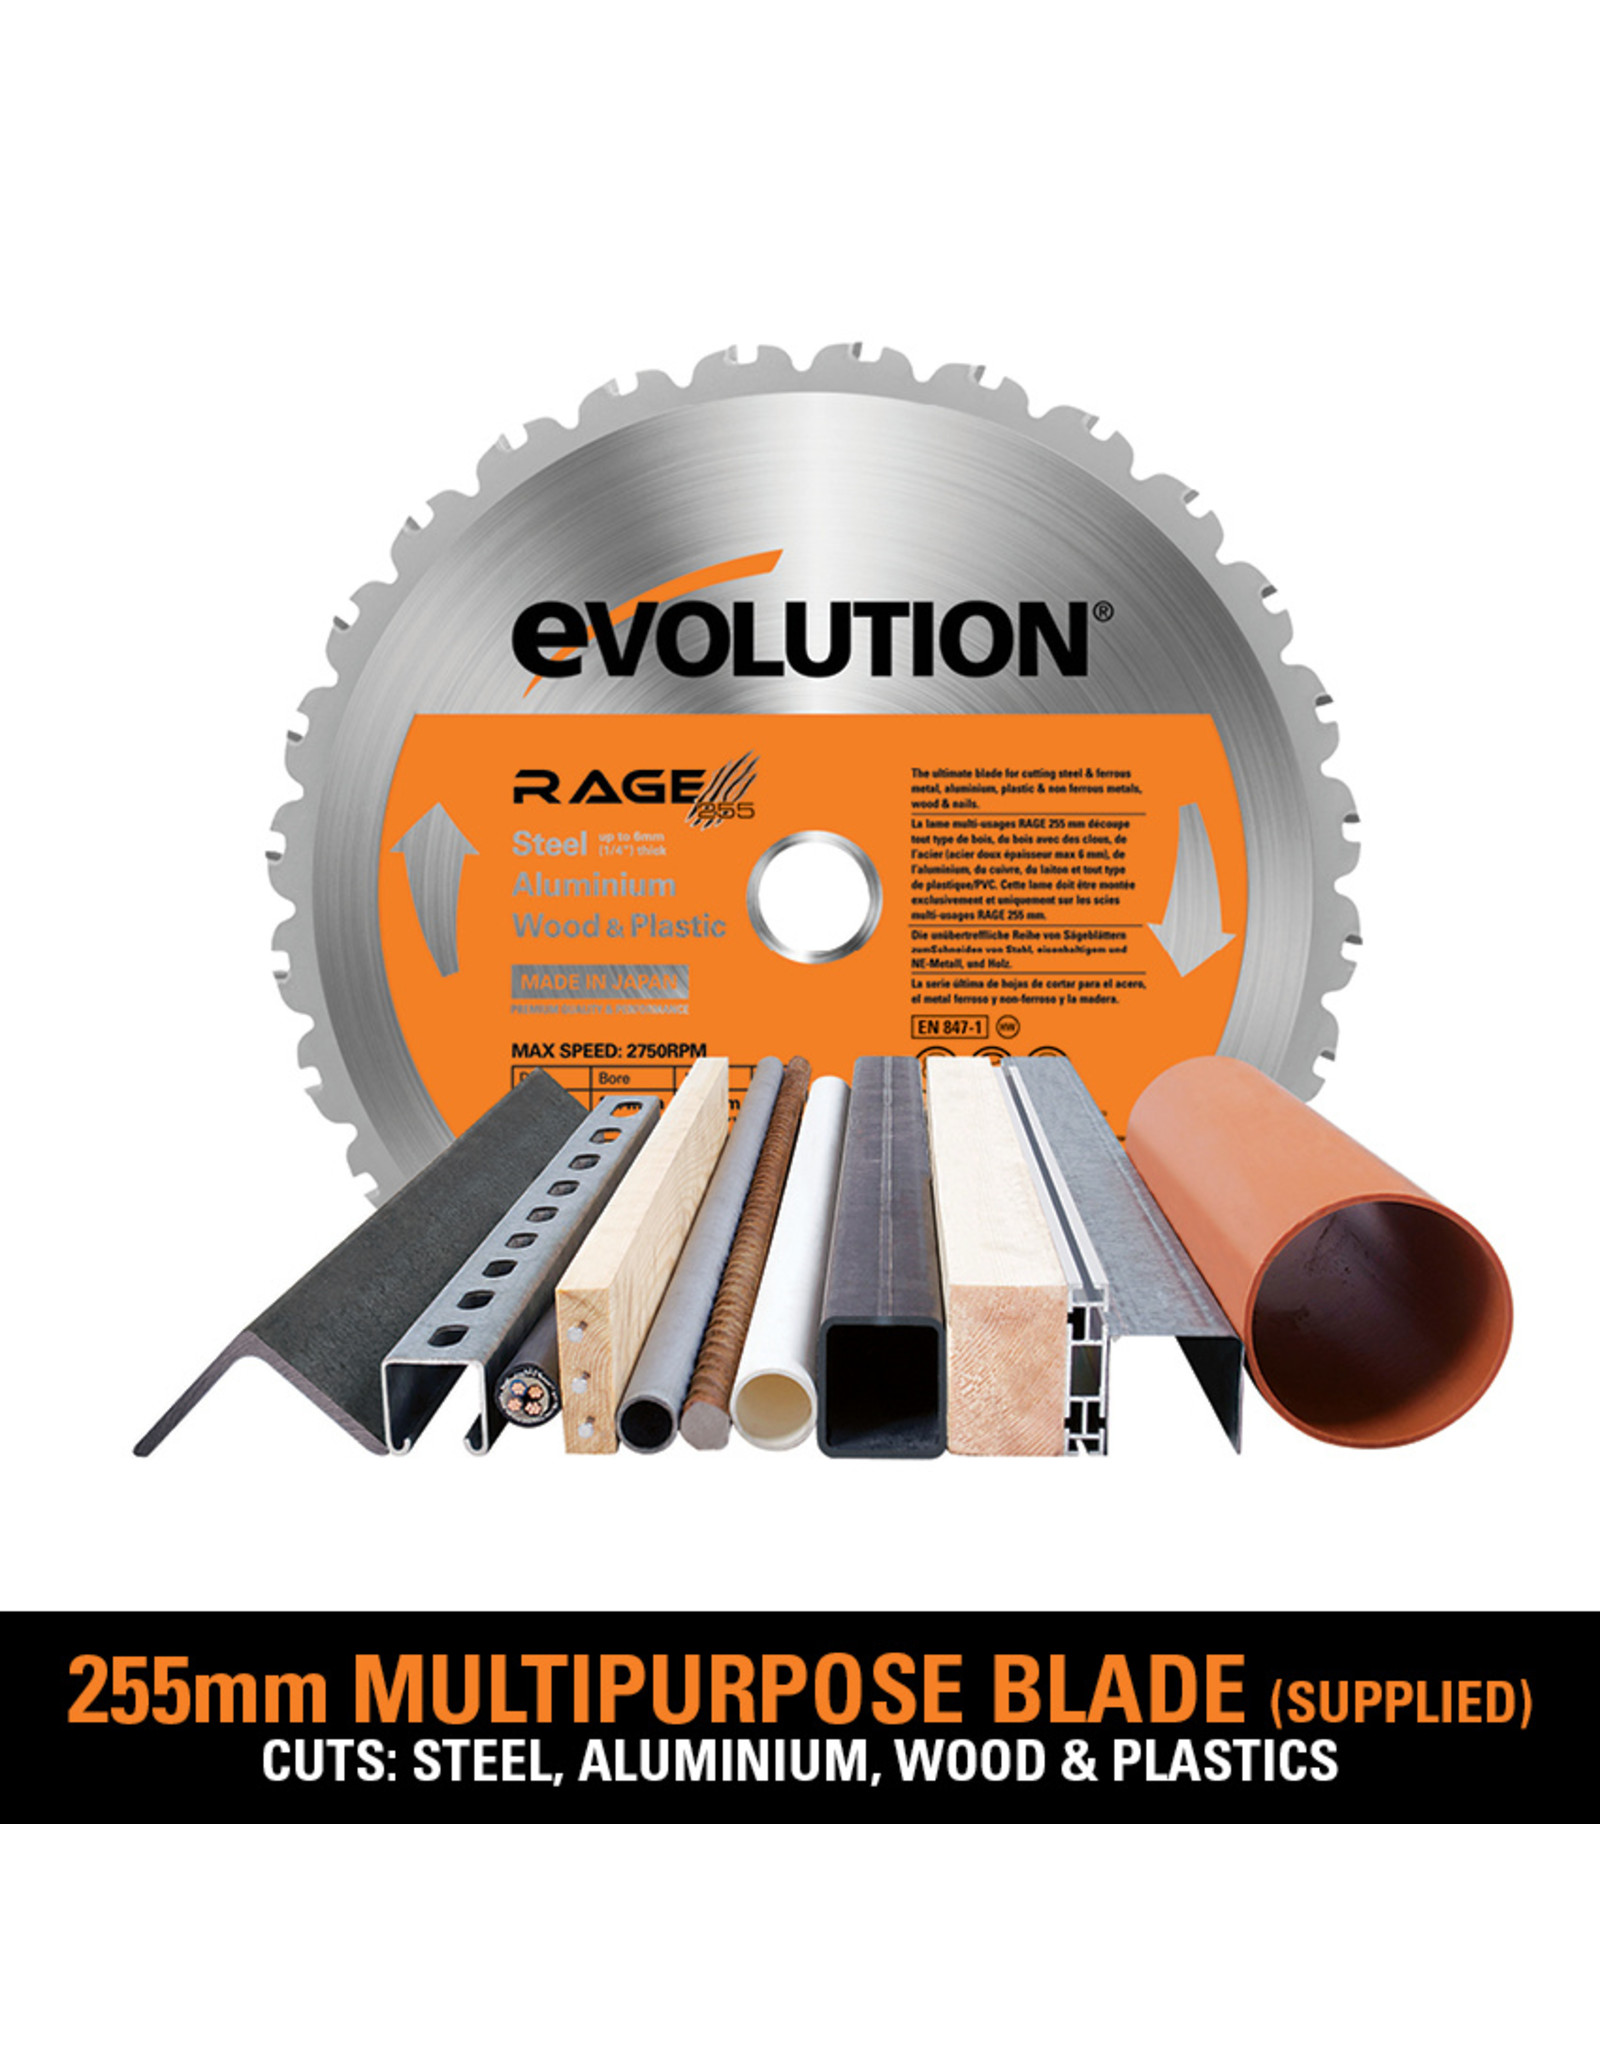 Evolution Power Tools Build Line TAFELZAAG RAGE 5-S